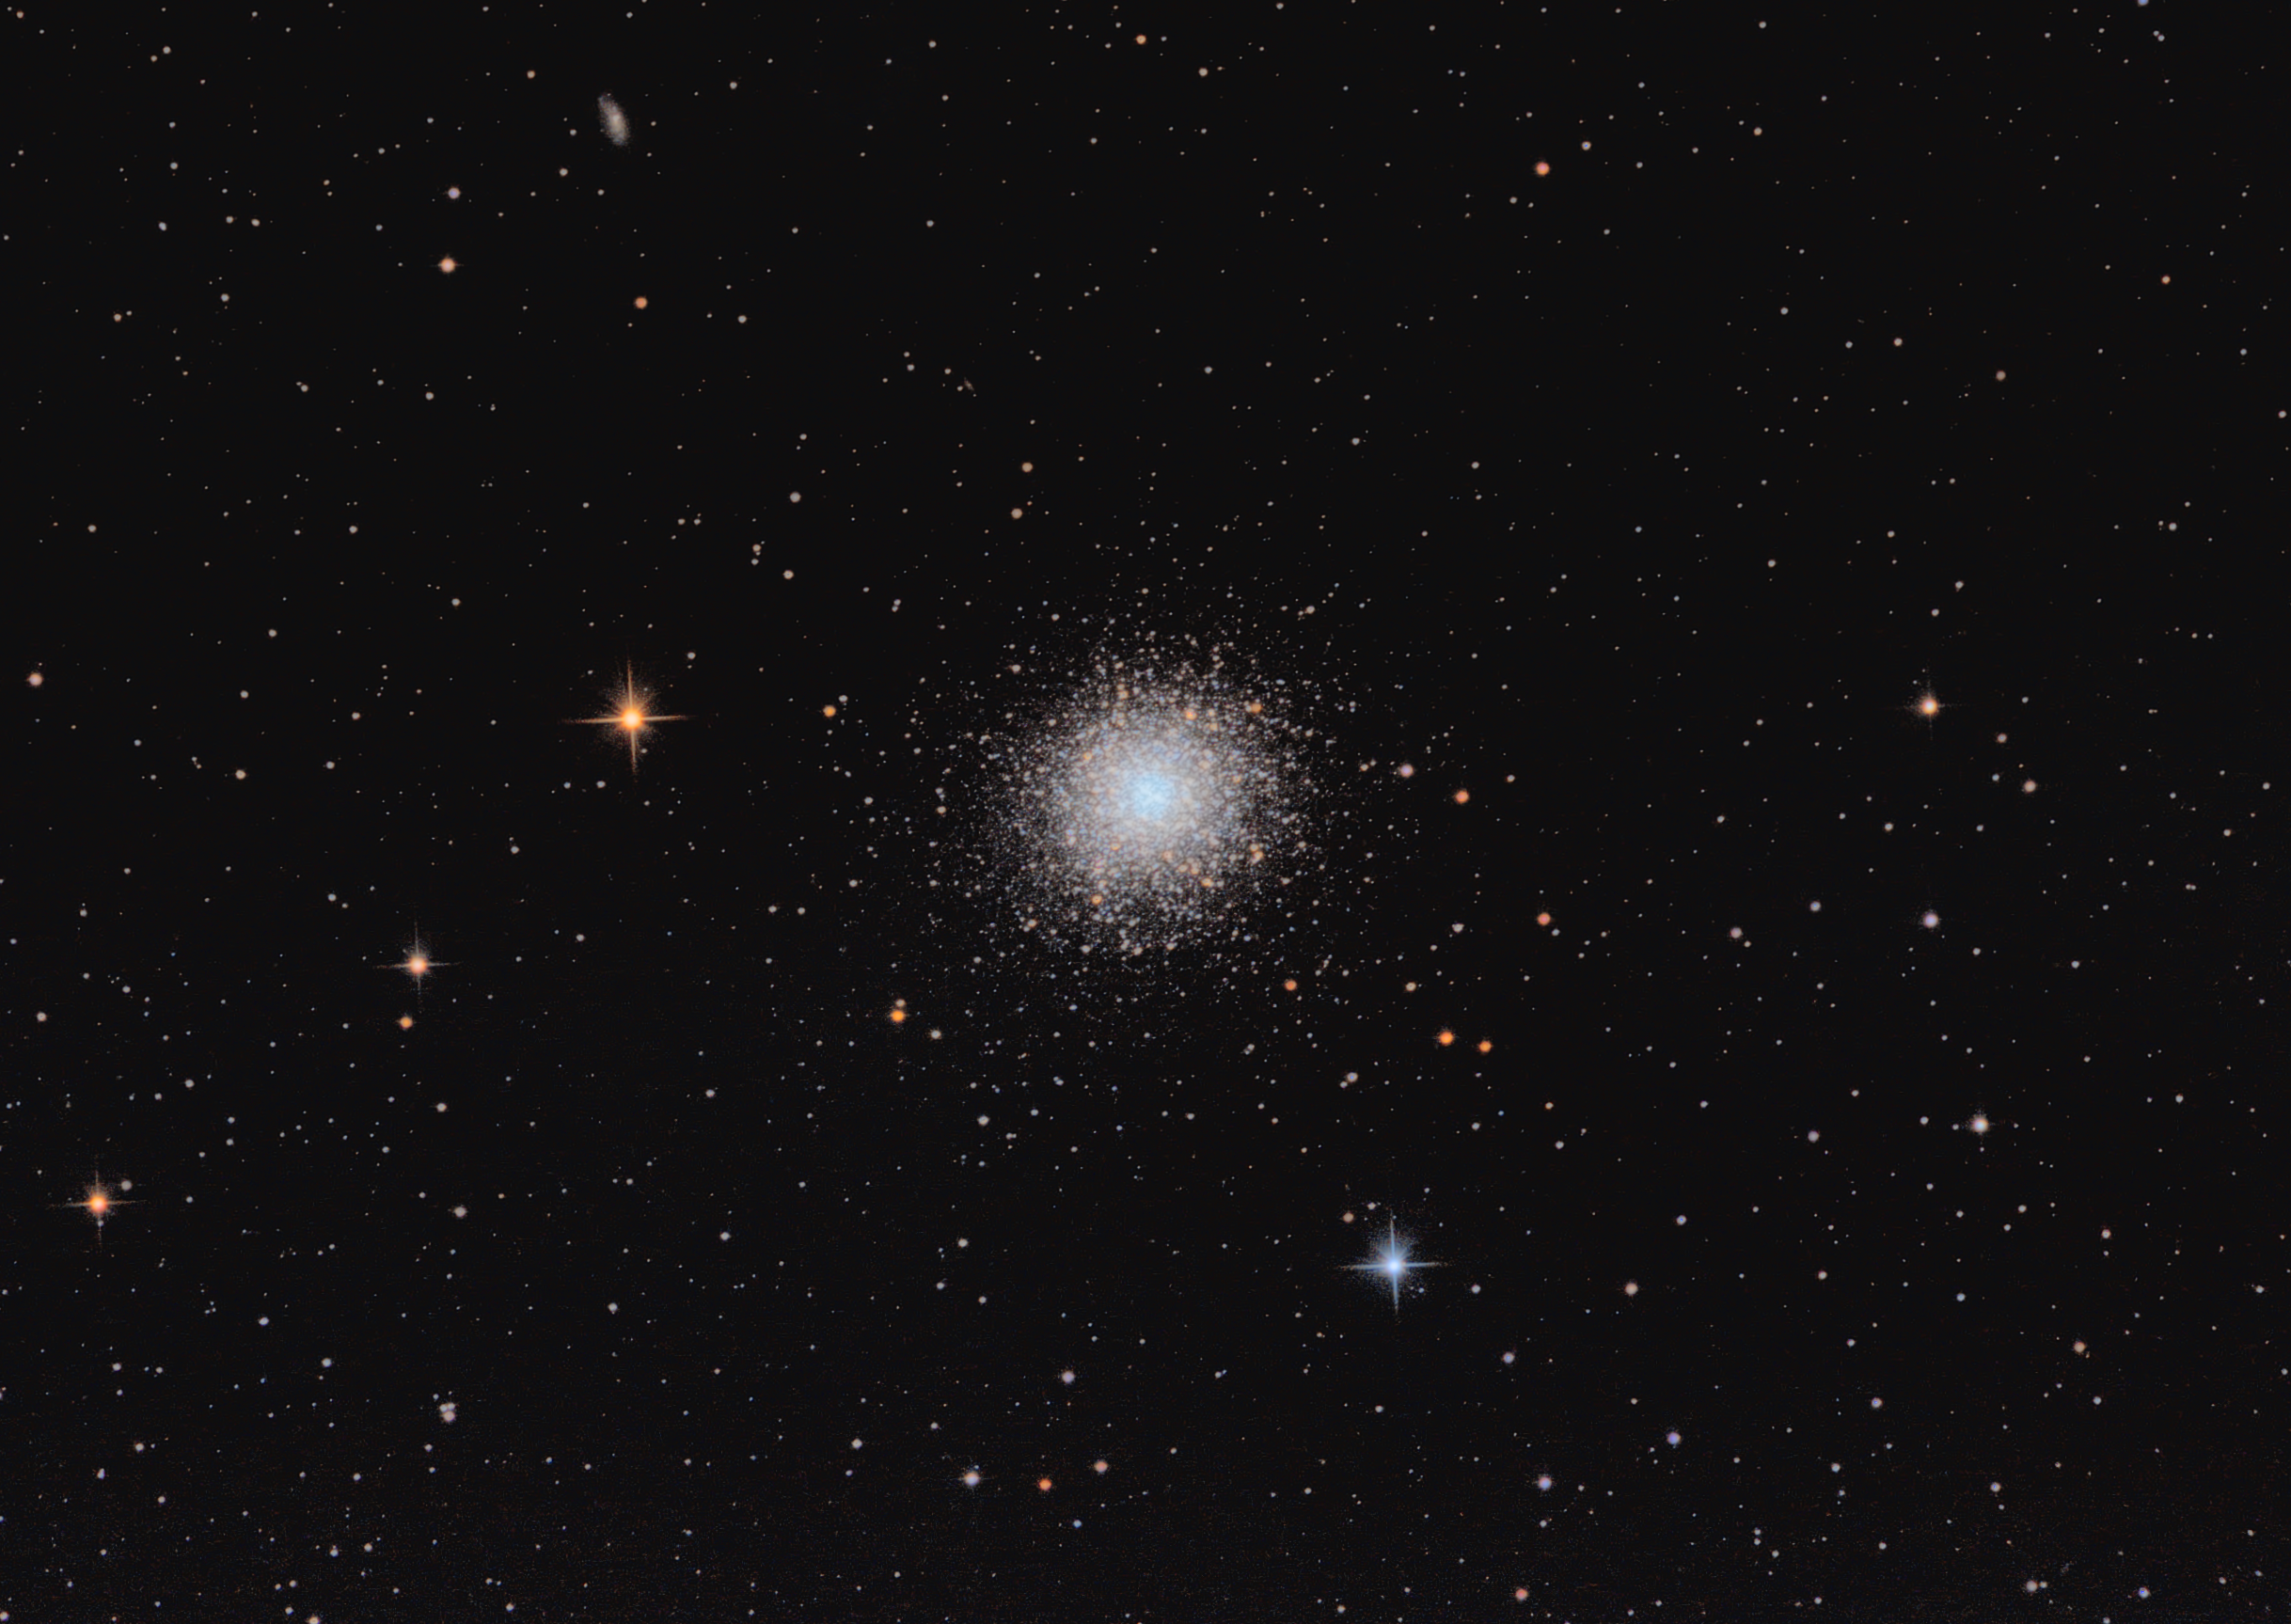 M13 Great Globular Cluster in Hercules